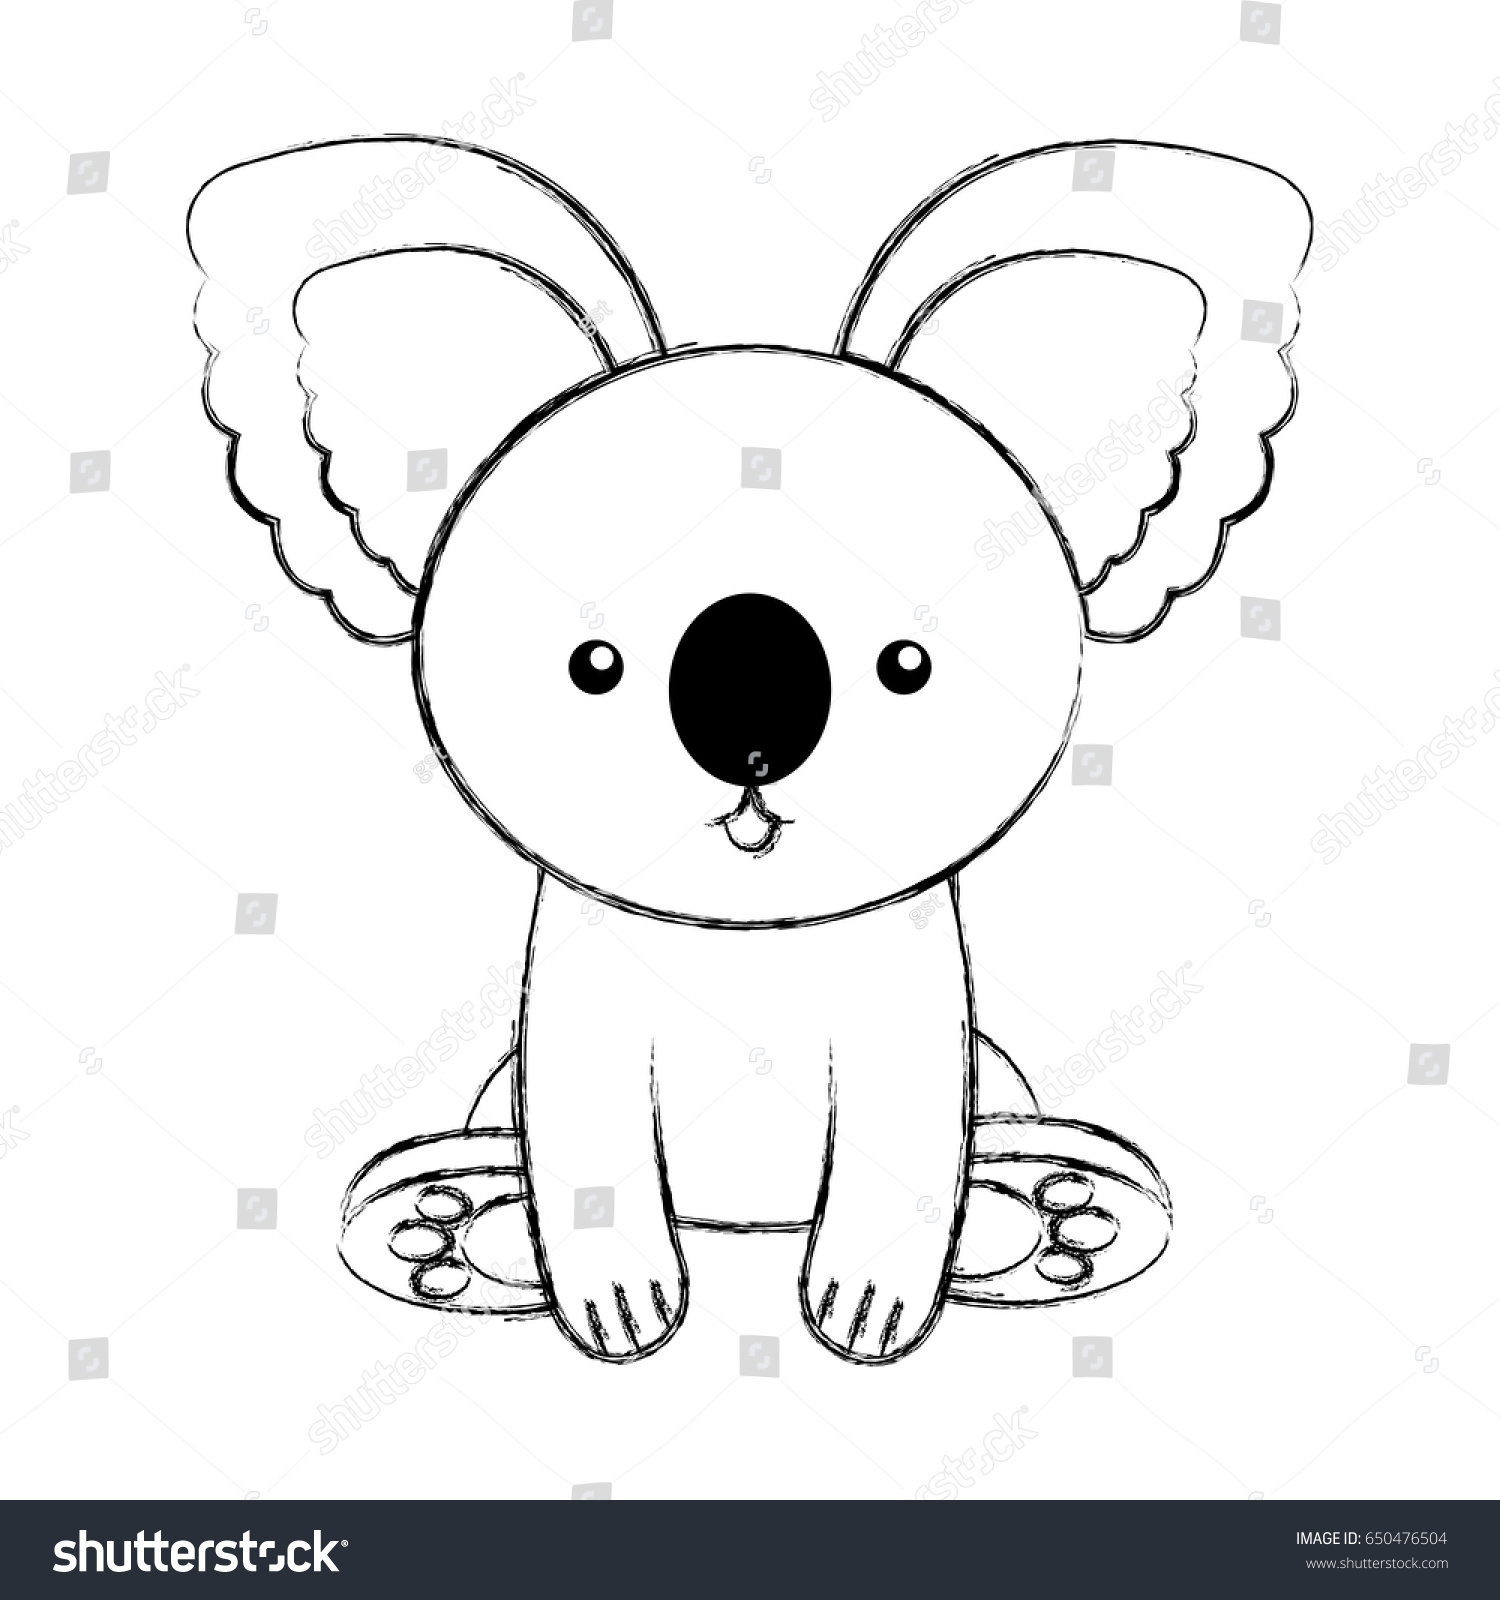 Uncategorized Draw Koala cute sketch draw koala cartoon stock vector 650476504 shutterstock cartoon